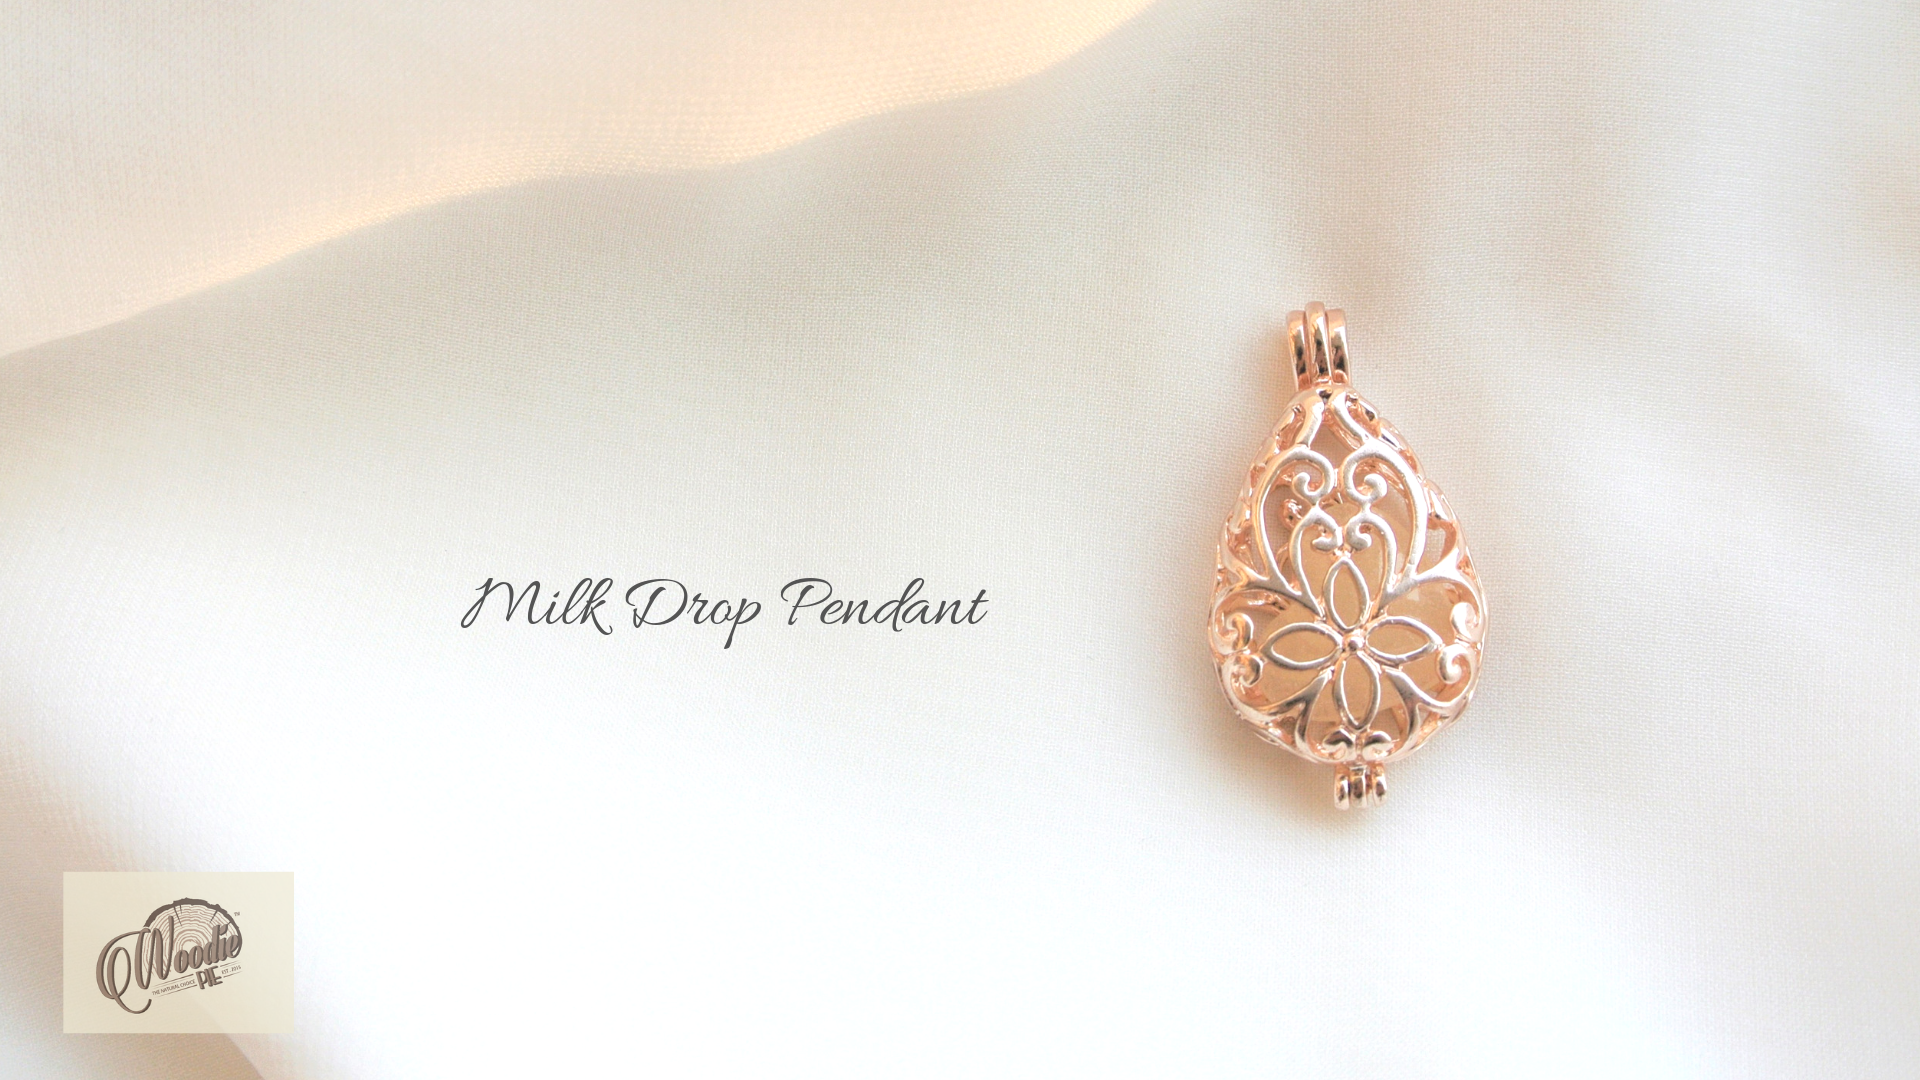 Milk Drop Pendant (2).png